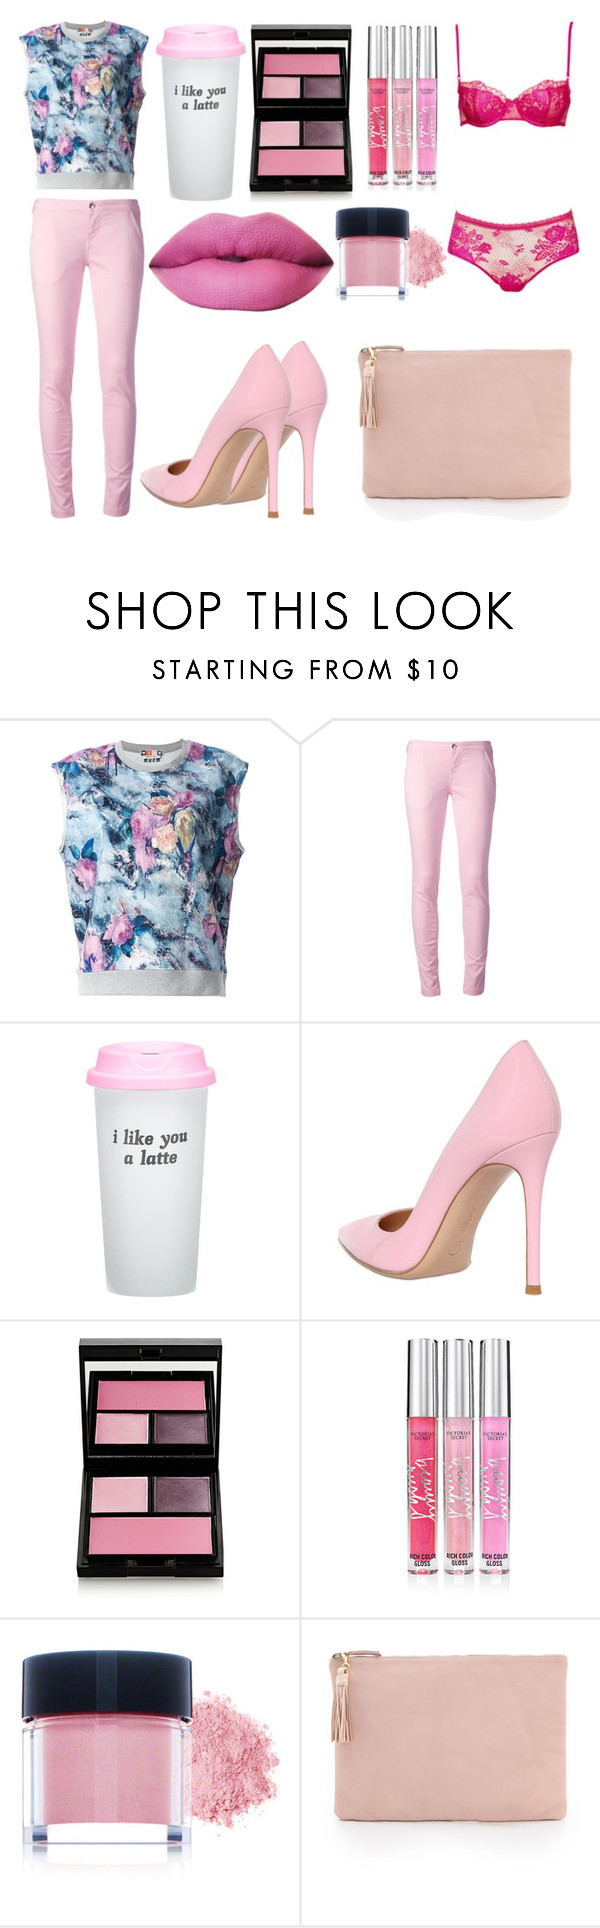 """""""Sans titre #3889"""" by crazymoustik ❤ liked on Polyvore featuring MSGM, FAY, Bow & Drape, Gianvito Rossi, Surratt, Victoria's Secret, Youngblood and Clare V."""